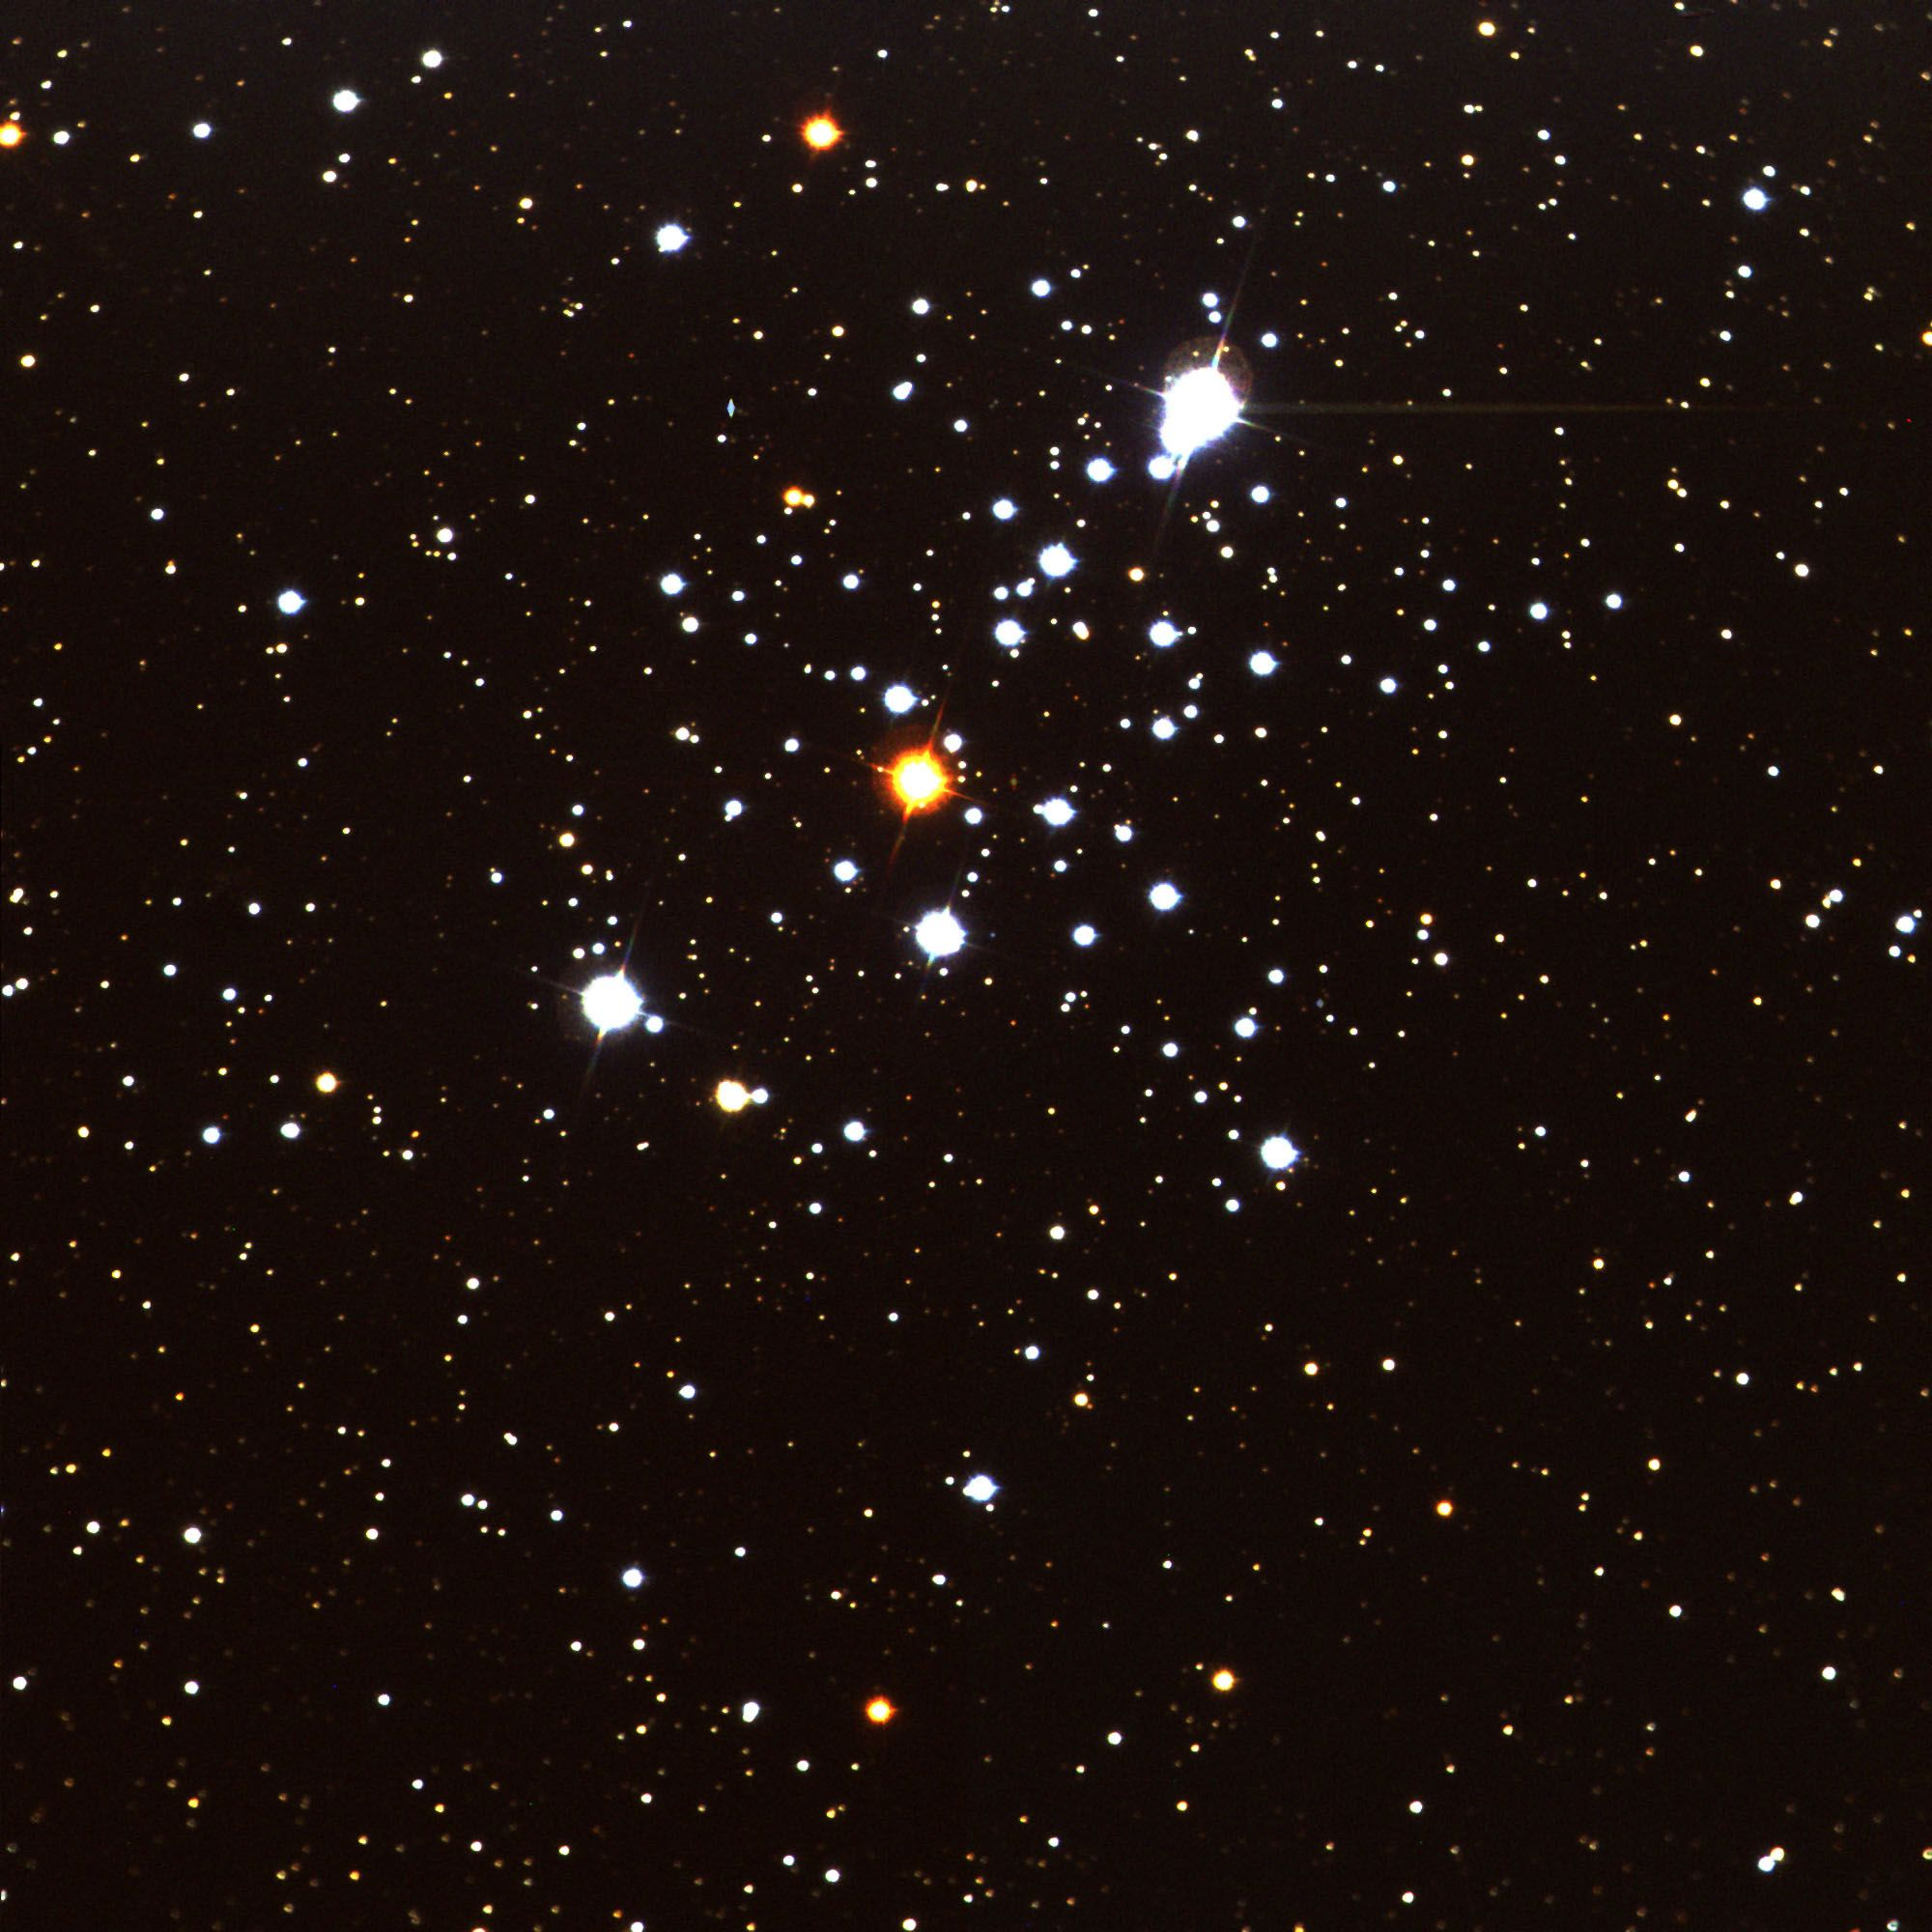 Open Cluster M103